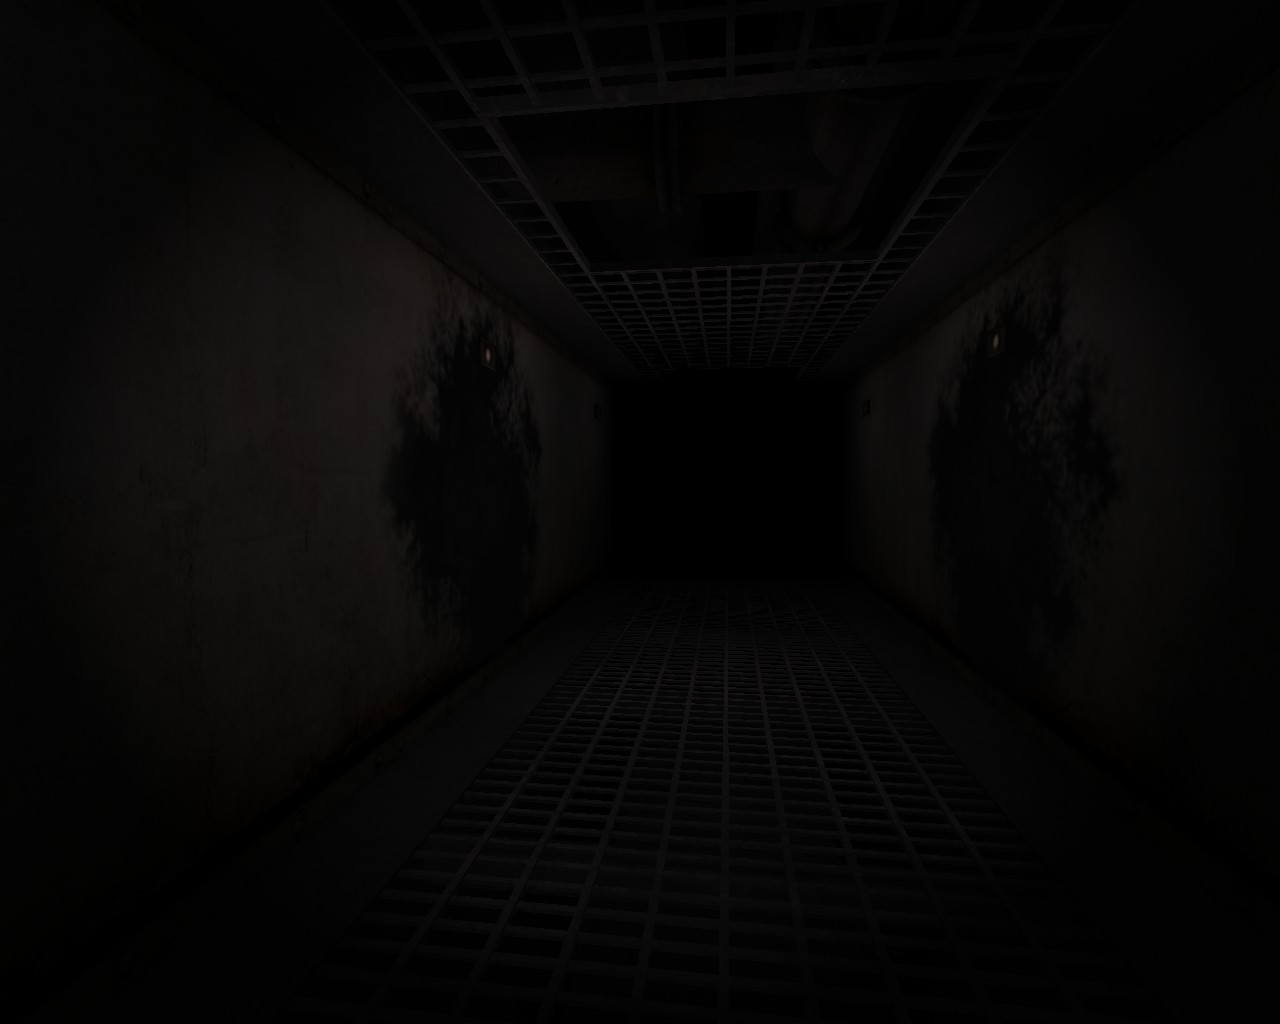 A picture of SCP - Containment Breach